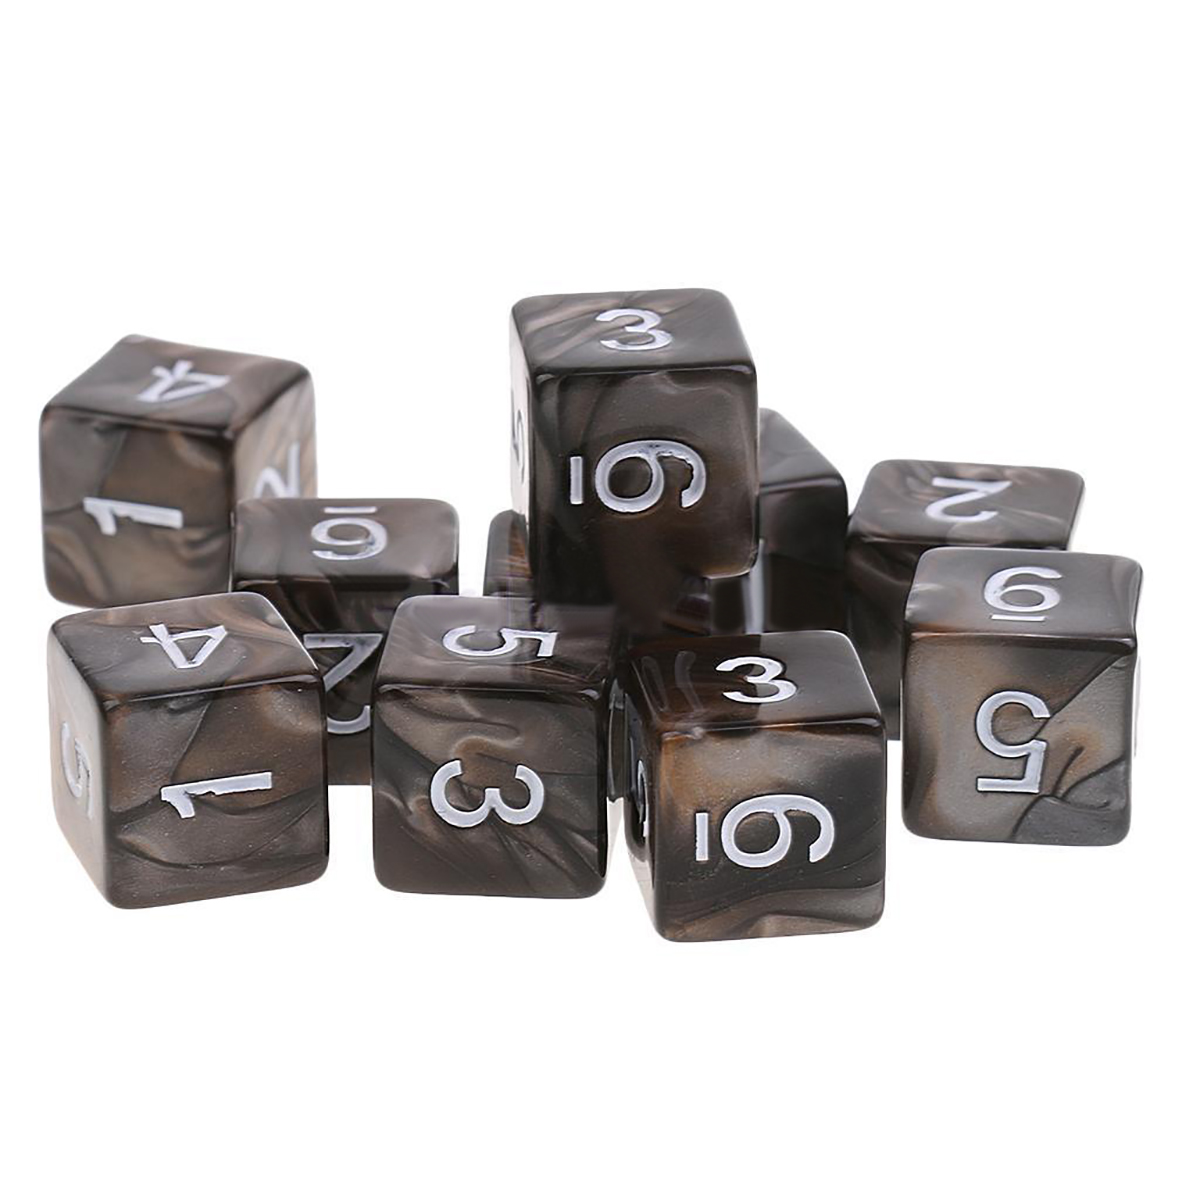 New D6 Sided Dice Set Polyhedral 6 Sides 10PCS Dice For Dungeons and Dragons MTG RPG Desktop Funny Games Outdoor Party Bar Tools ゲーム ポート ピン